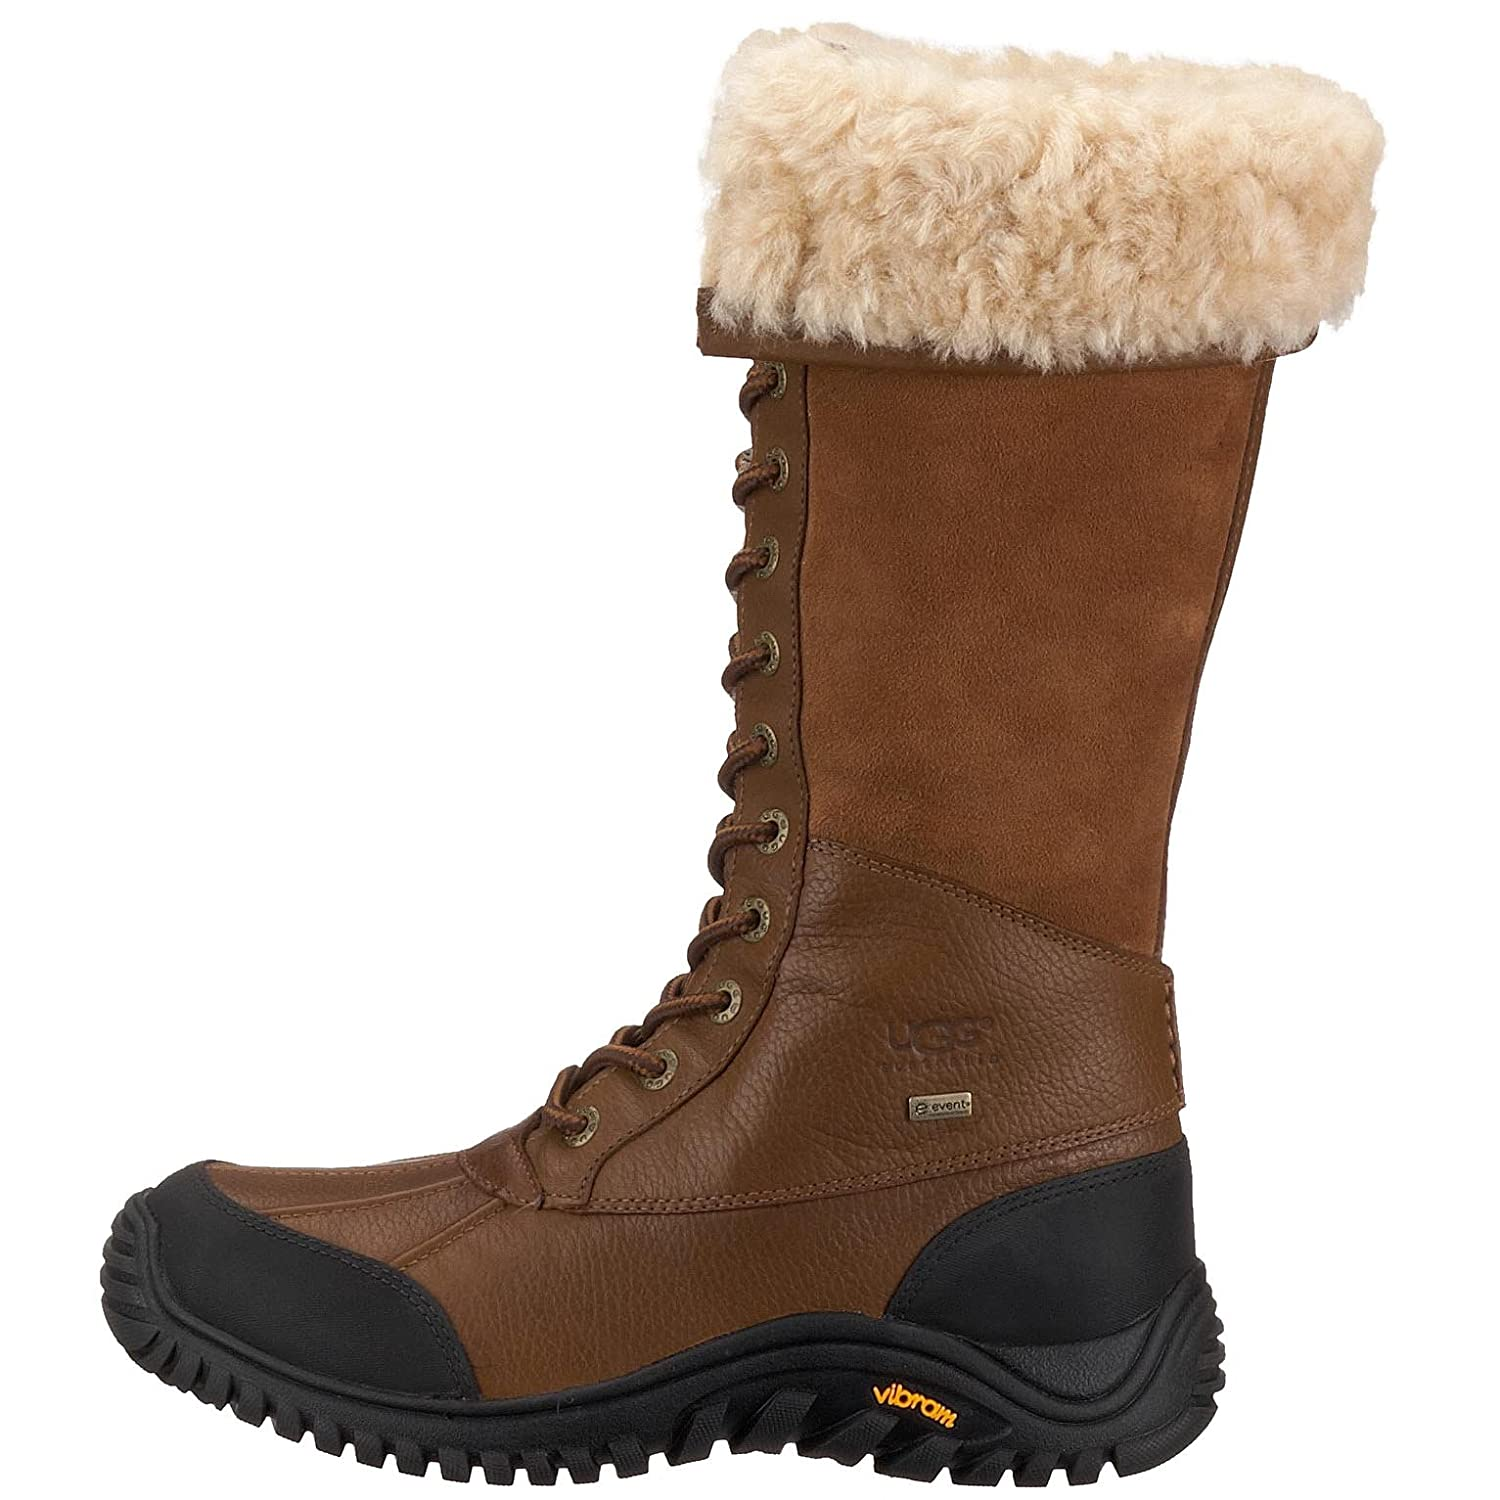 6322d94532d UGG Womens Adirondack Tall Snow Boot